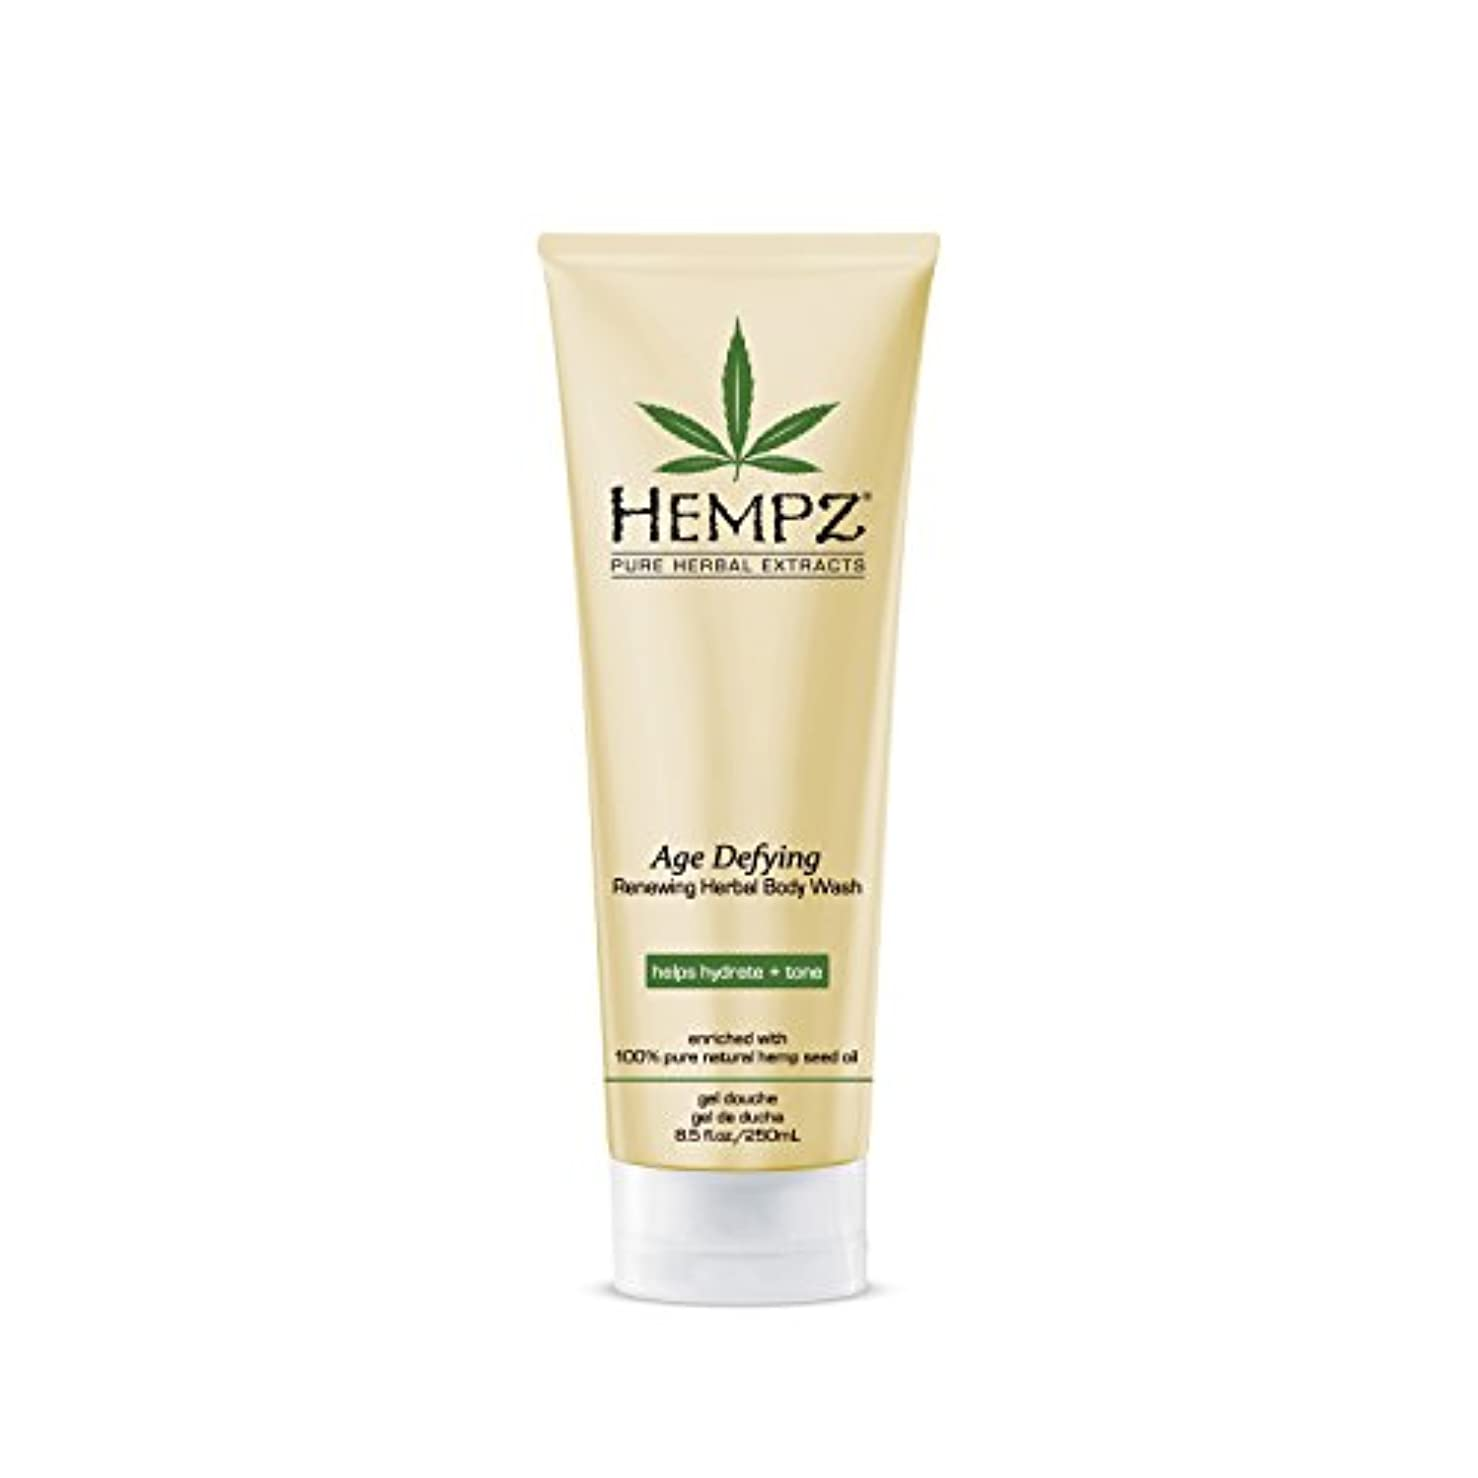 フリッパースカイなだめるHempz Age Defying Herbal Body Wash, Off White, Vanilla/Musk, 8.5 Fluid Ounce